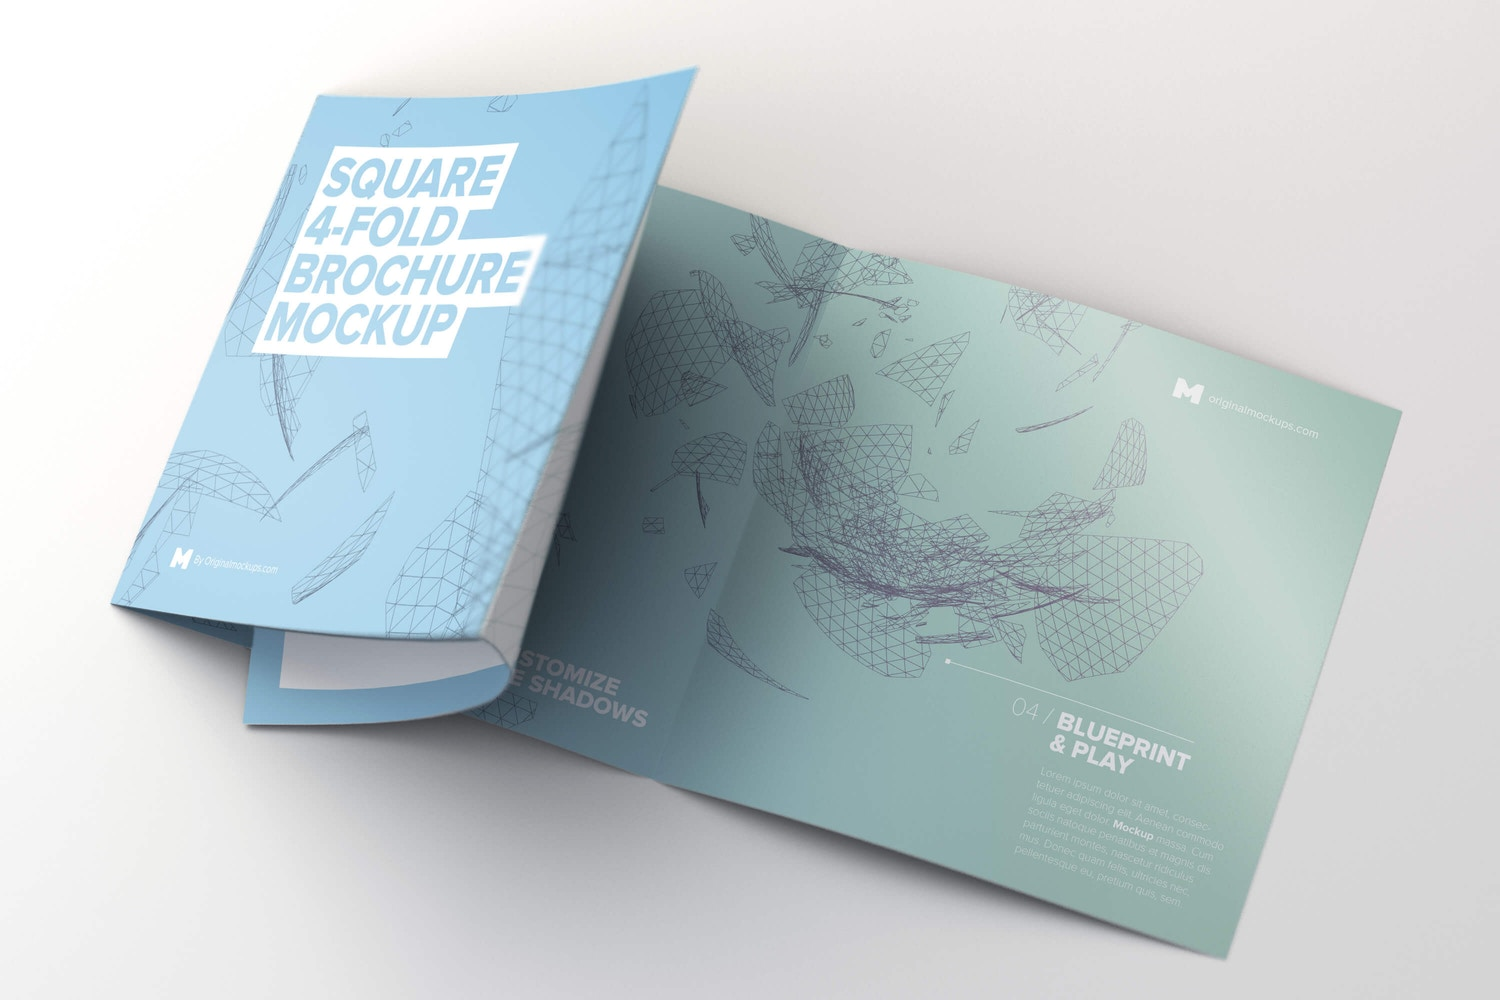 Unfolding Square 4-Fold Brochure Mockup by Original Mockups on Original Mockups